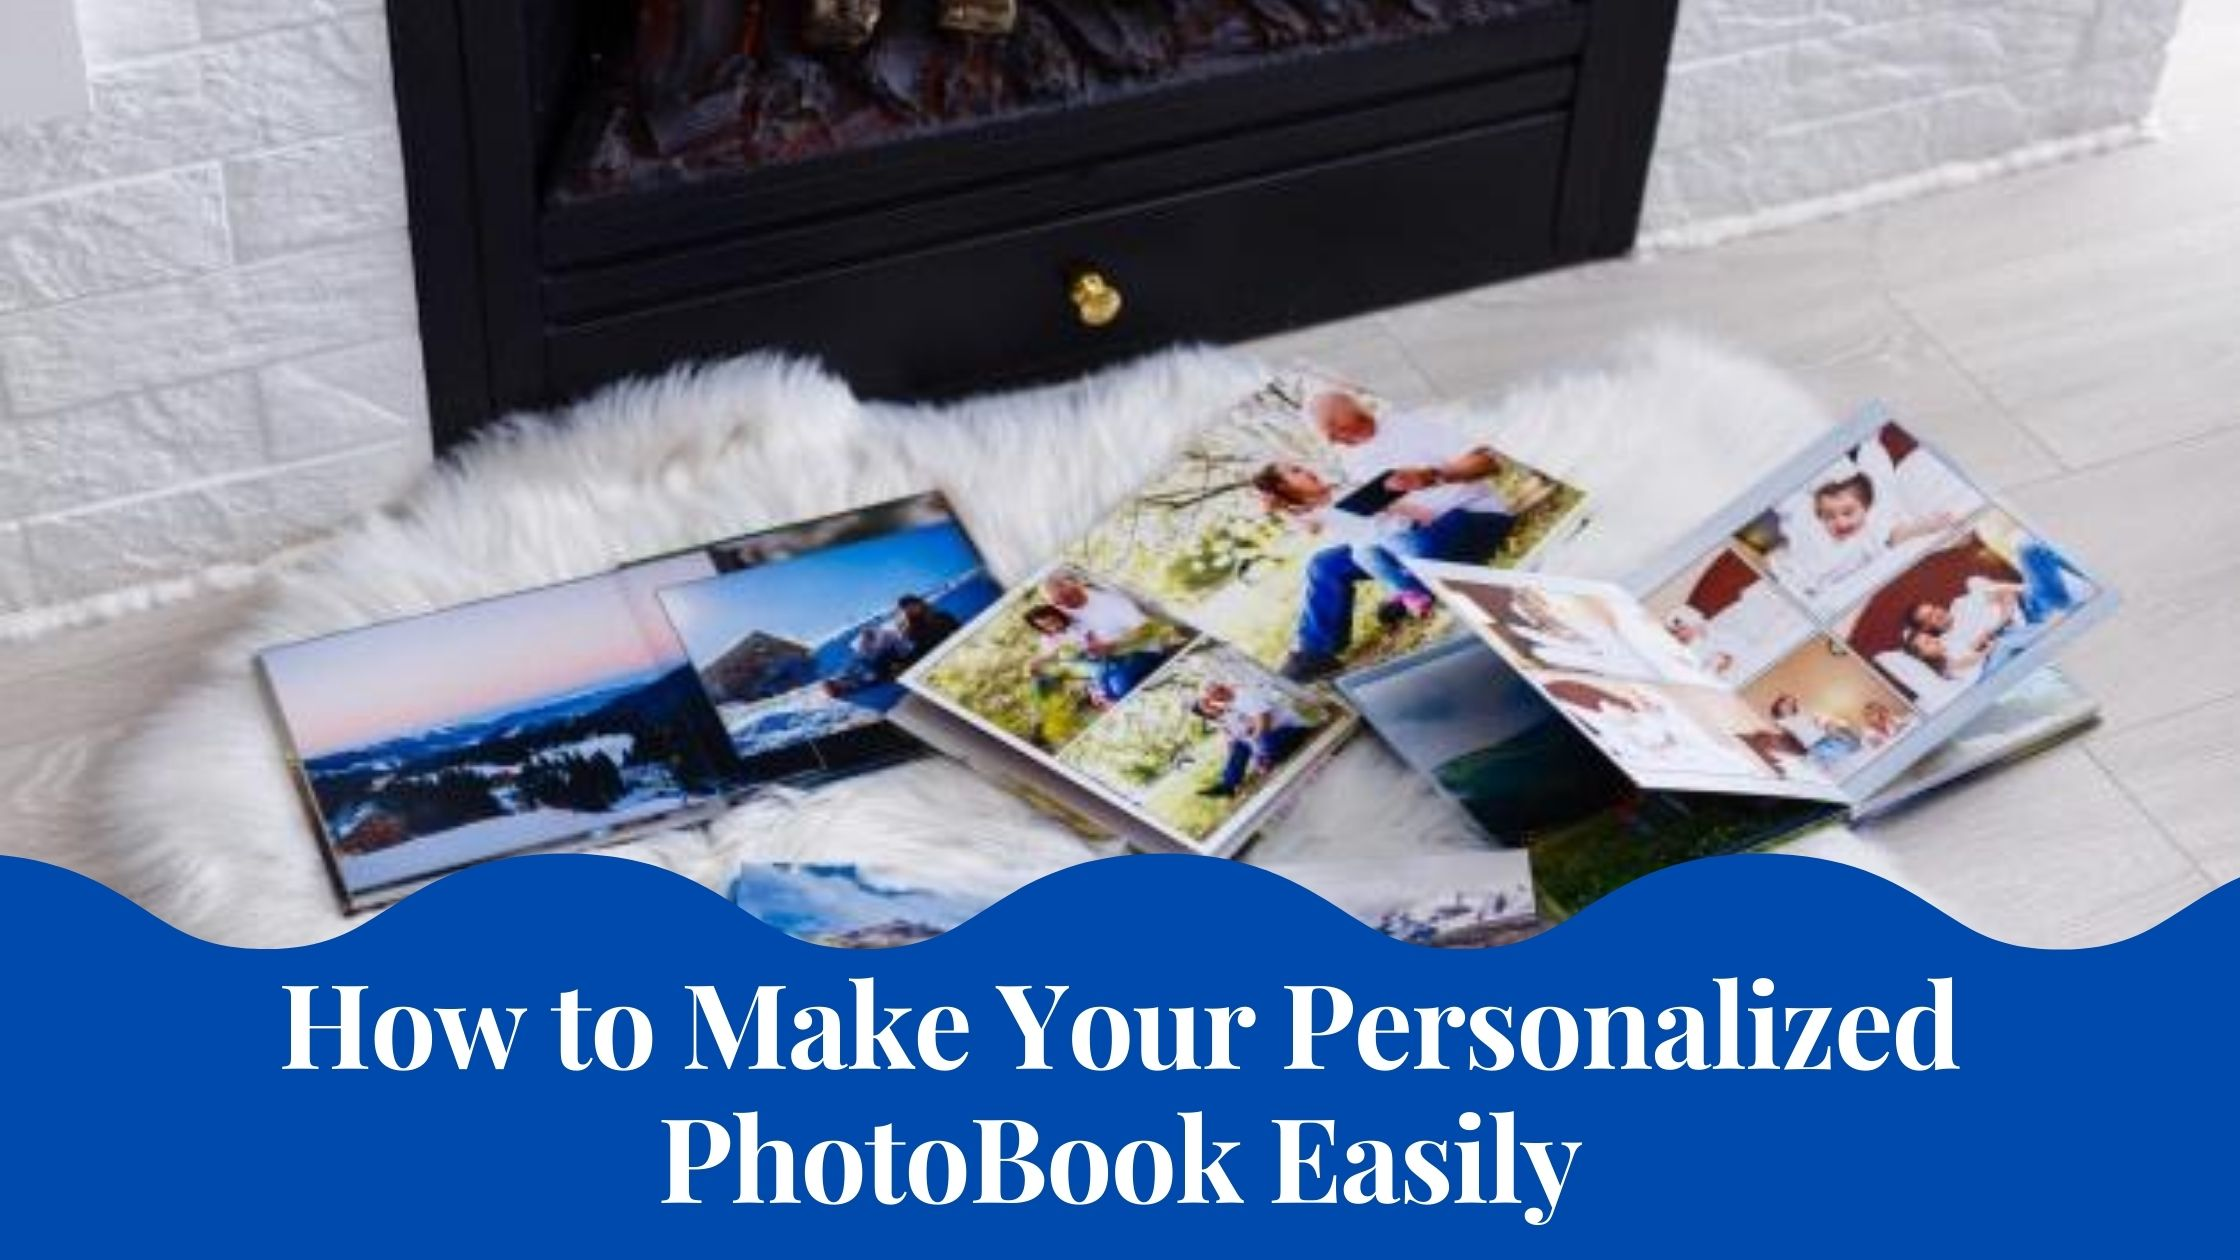 How to Make Your Personalized PhotoBook Easily